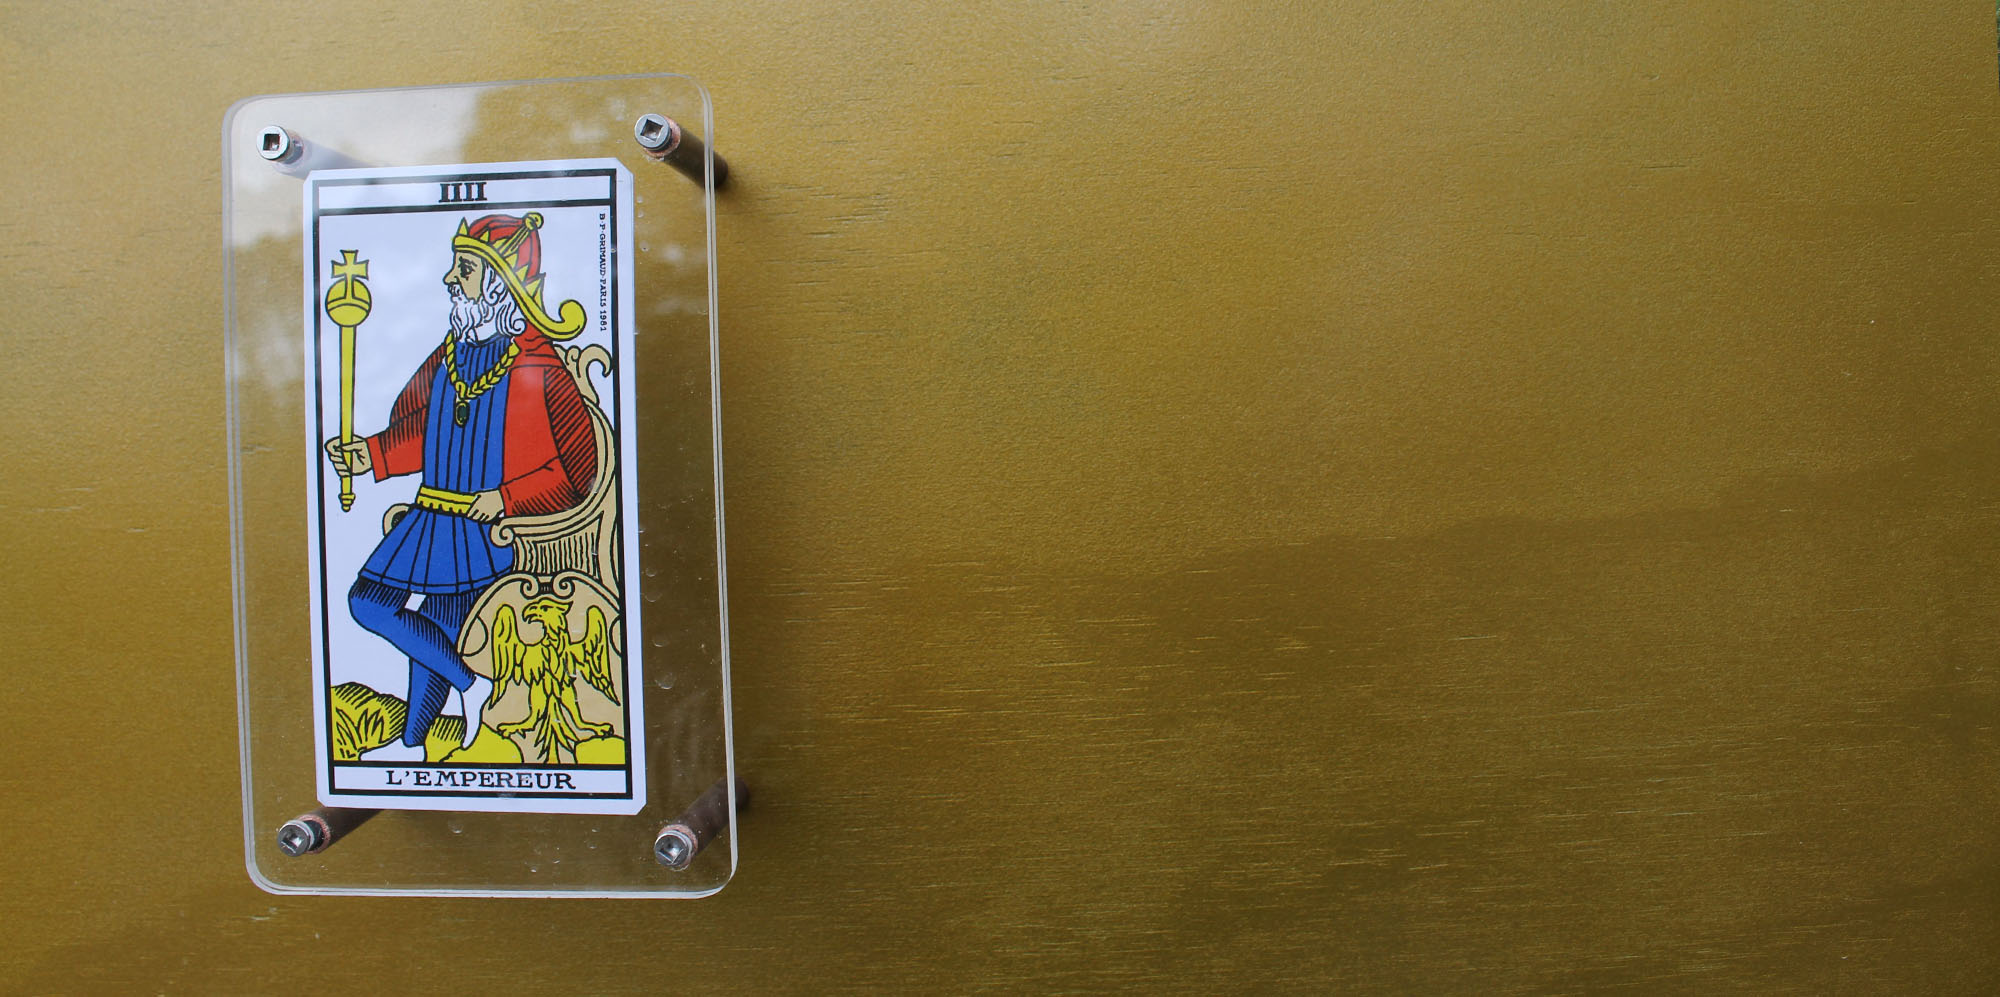 One of the card holder